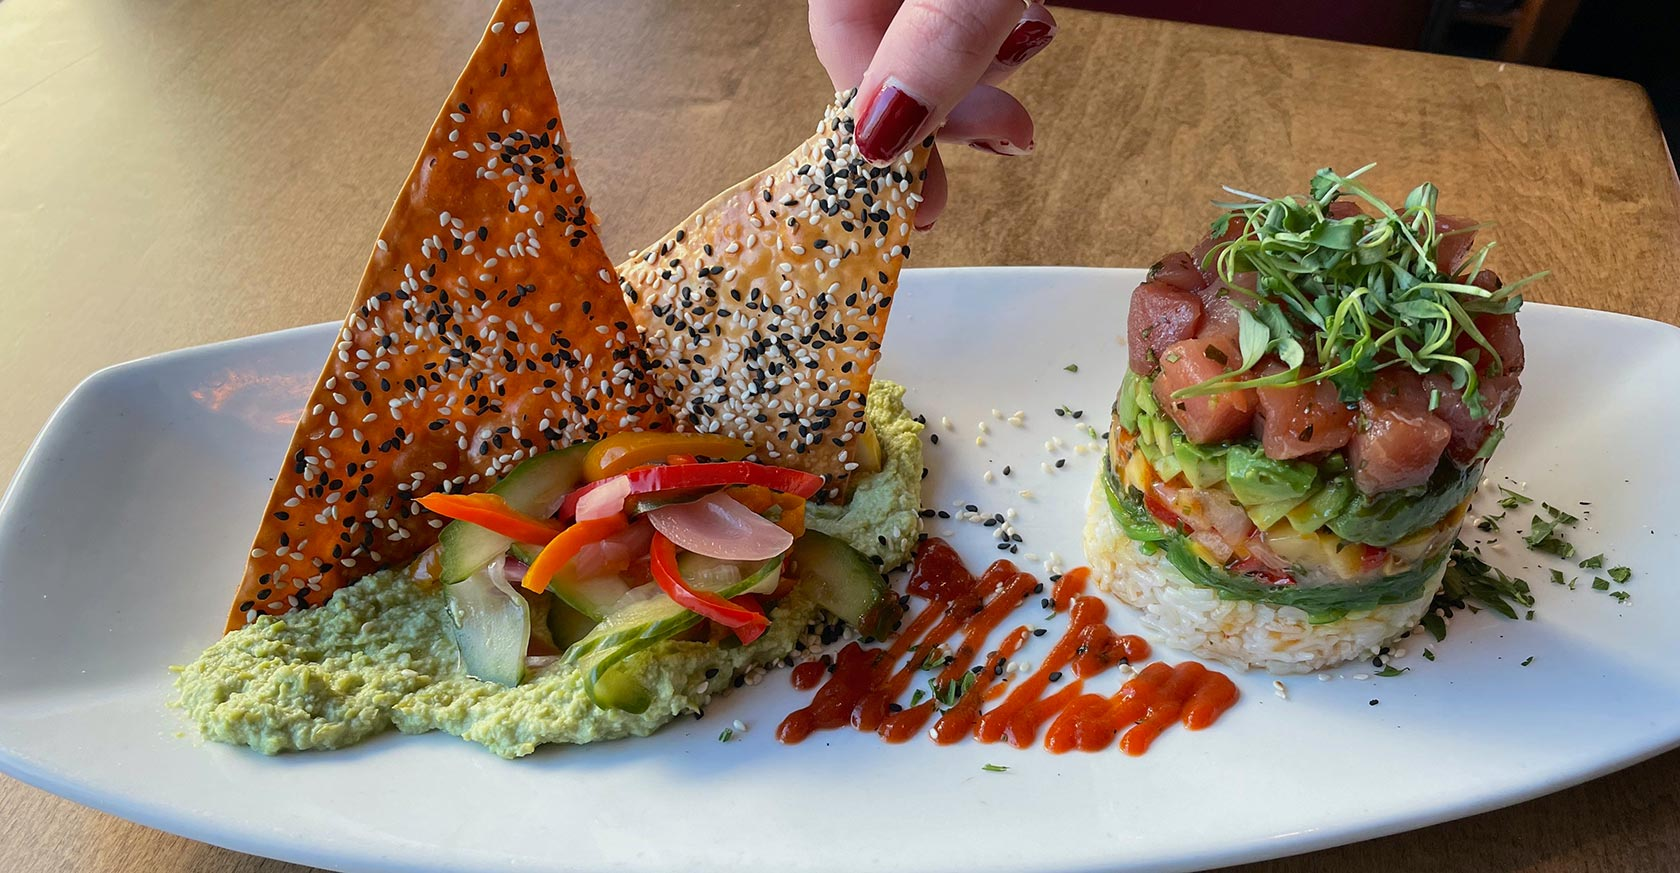 Woman's hand picking up sesame cracker from raw tuna entree dish